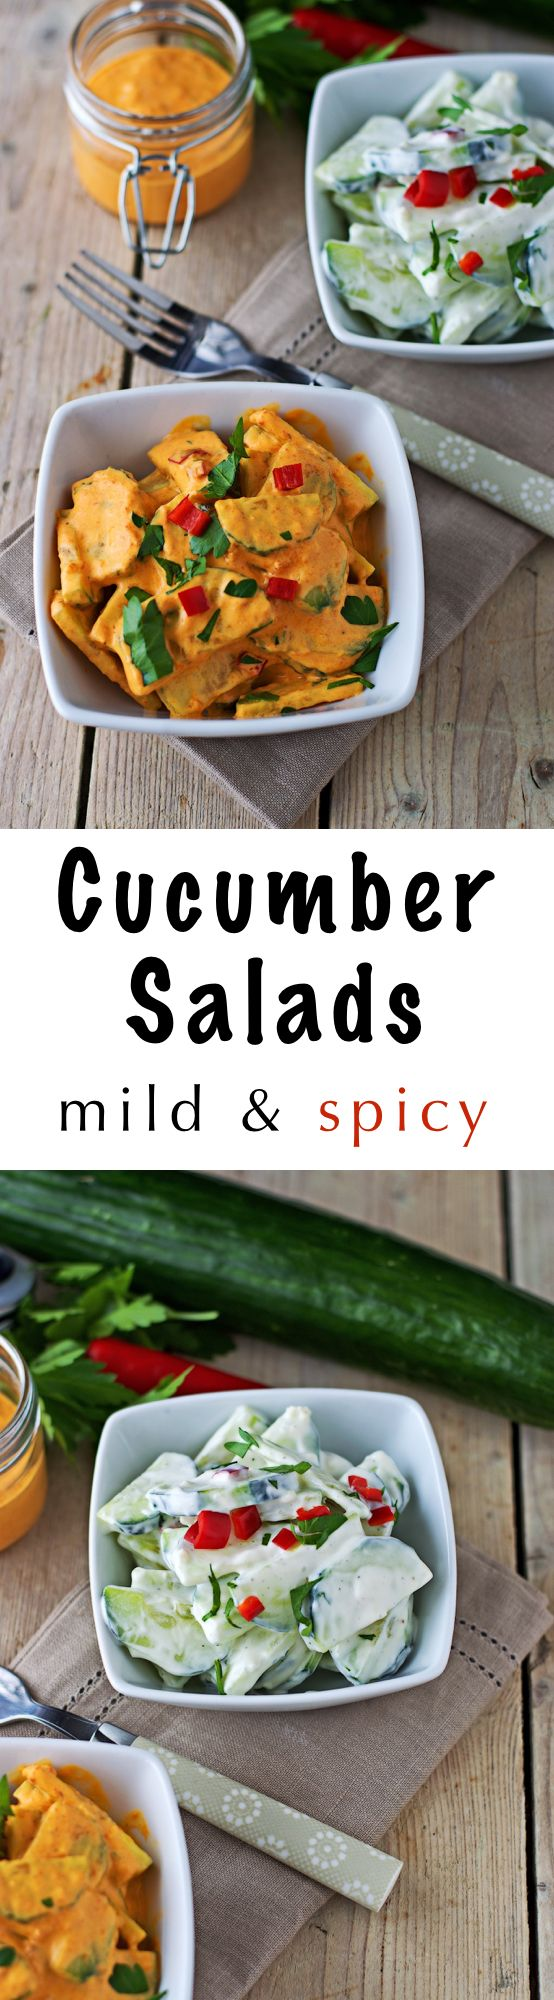 Due to popular demand: An easy #vegan #cucumber #salad recipe 2 ways: with a mild and a spicy dressing option. Only 5 ingredients and no cooking plate needed ;)